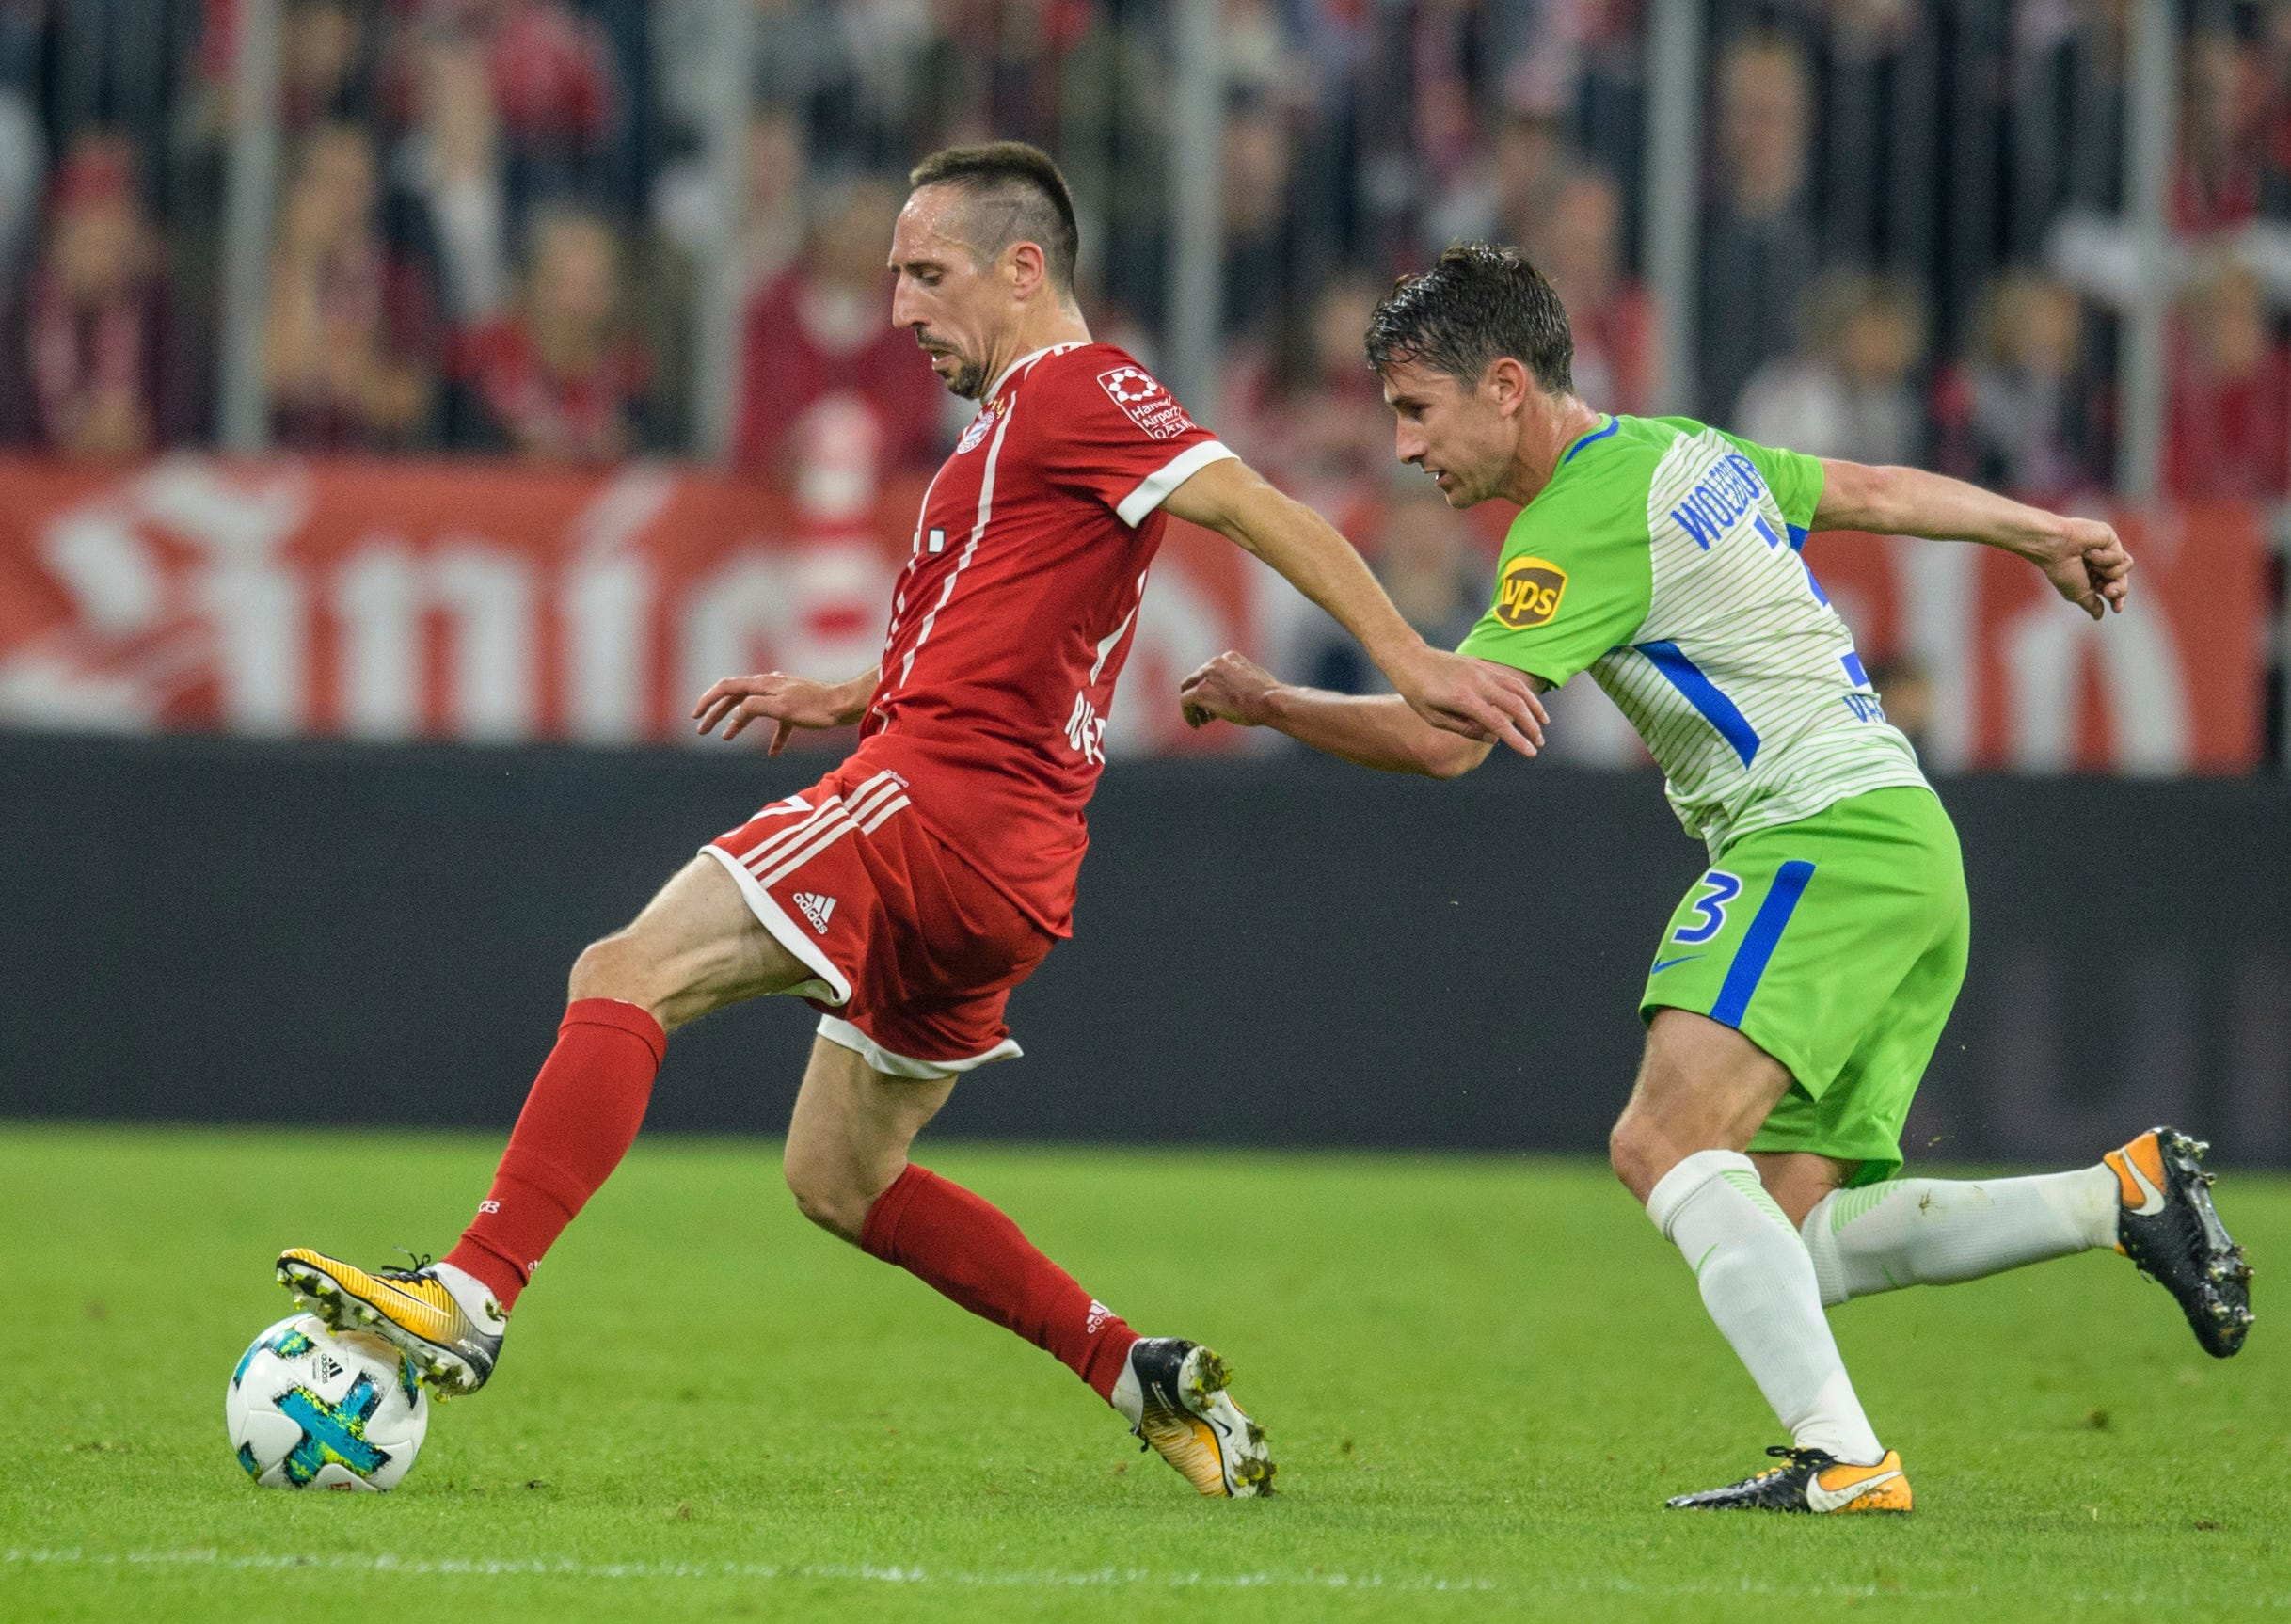 Bayern lets 2-goal lead slip at home, draws with Wolfsburg